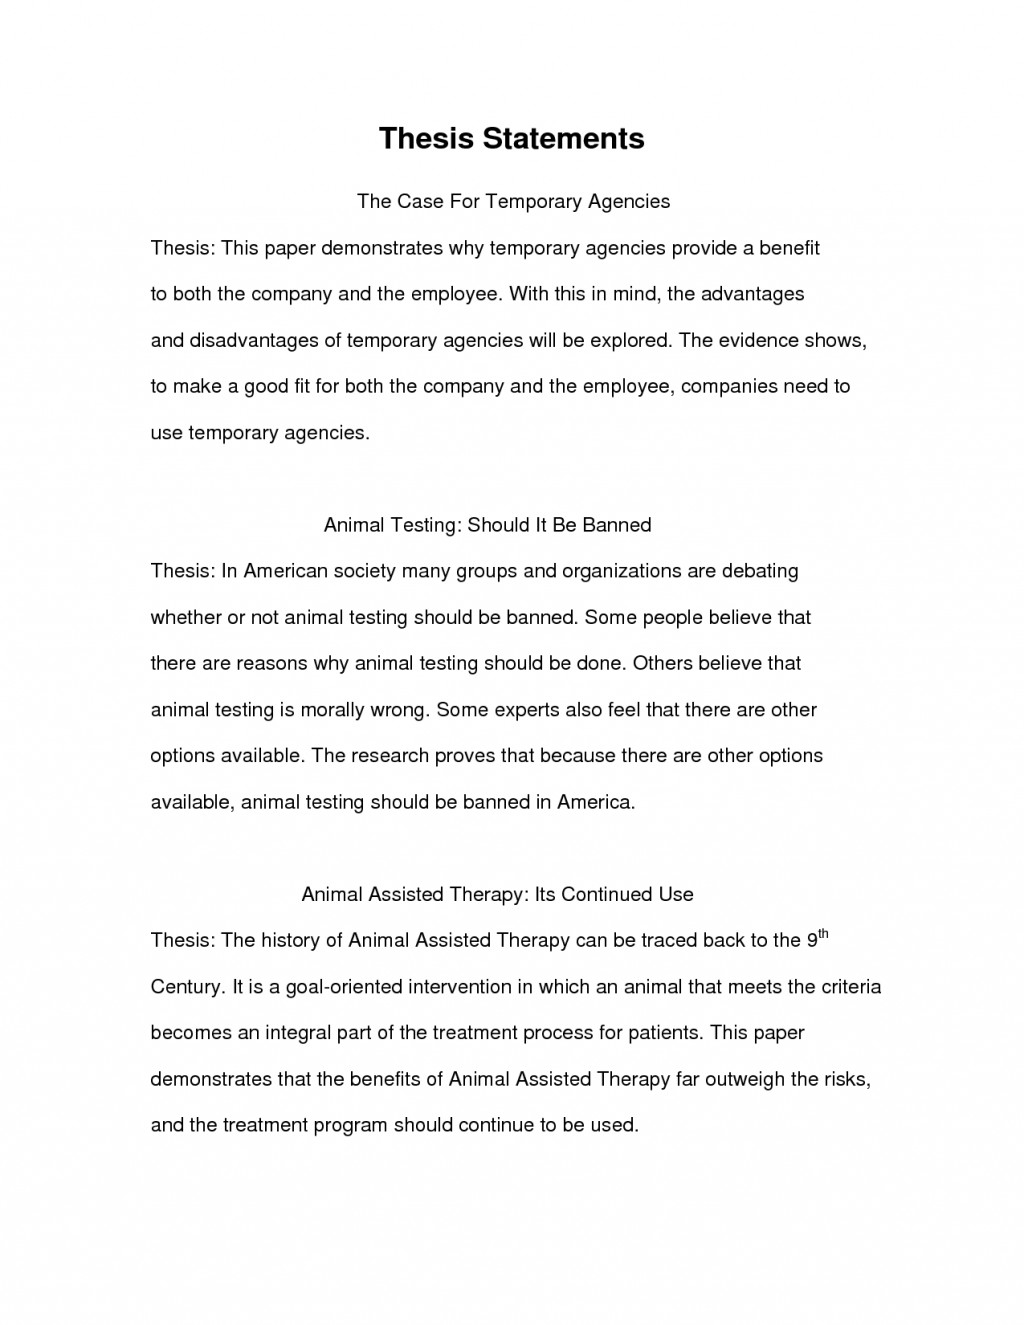 Science And Technology Essays  High School Essay also How To Make A Good Thesis Statement For An Essay  How To Write Thesis Statement For Research Paper In Mla  Essays About Business